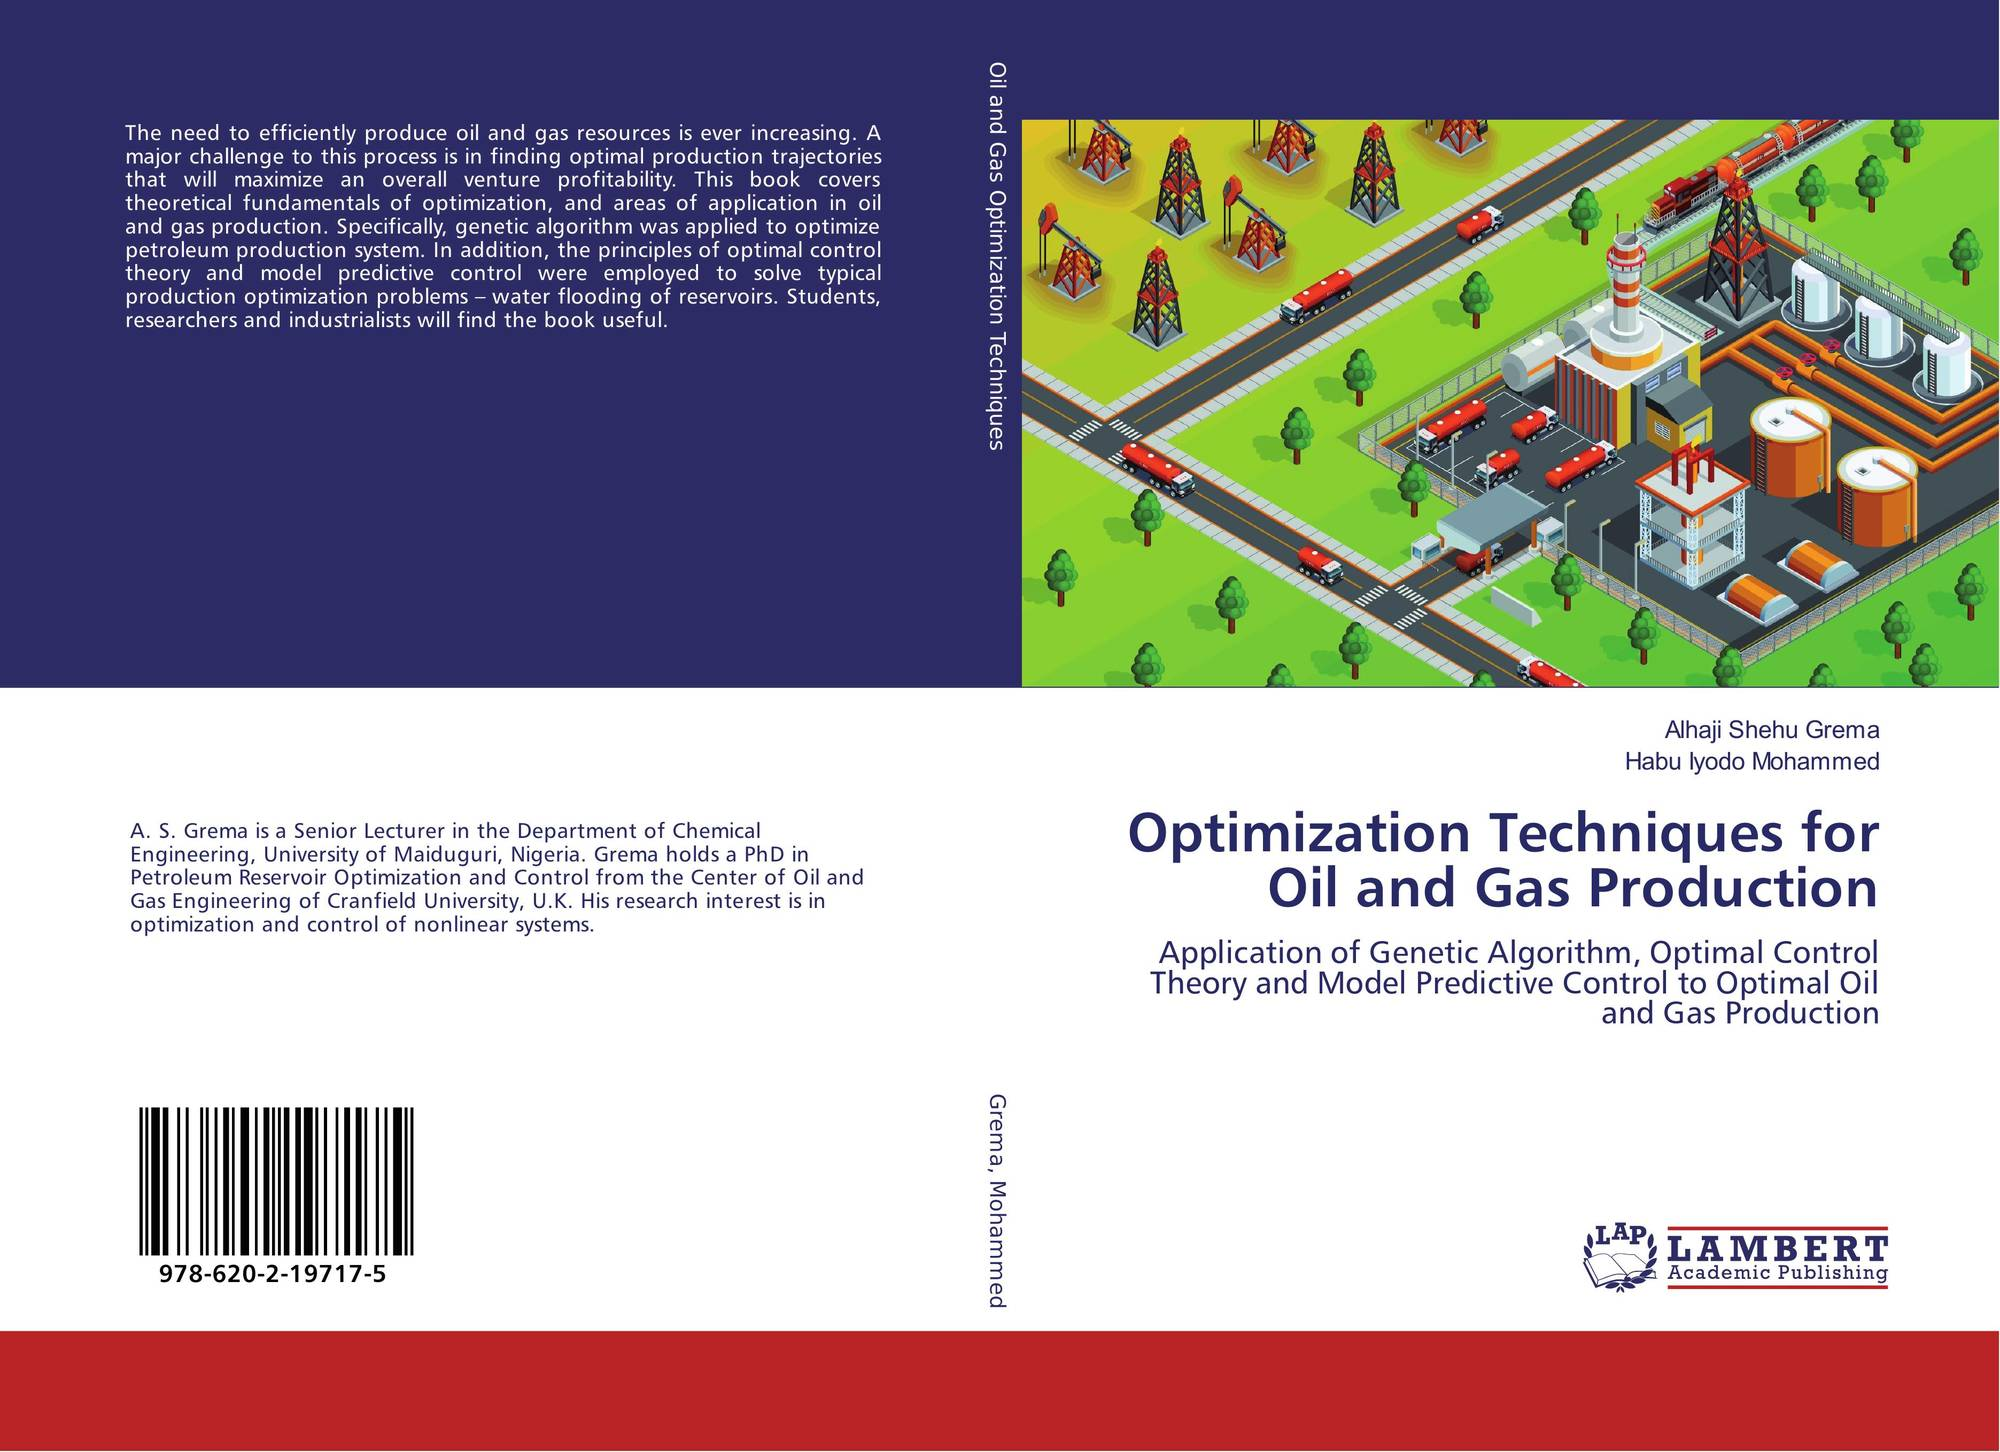 Optimization Techniques for Oil and Gas Production, 978-620